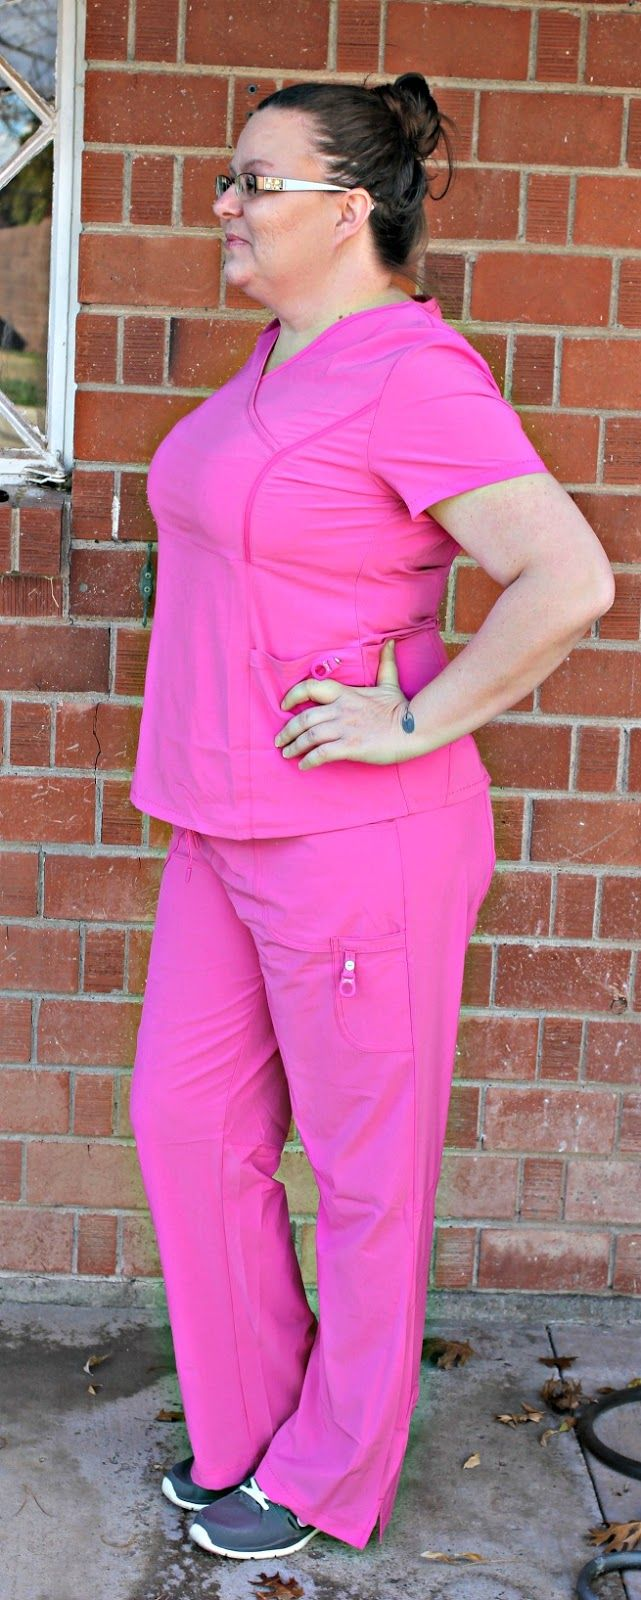 Clinical scrubs style function plus a giveaway landau scrubs clinical scrubs style function plus a giveaway landau scrubs review nvjuhfo Image collections